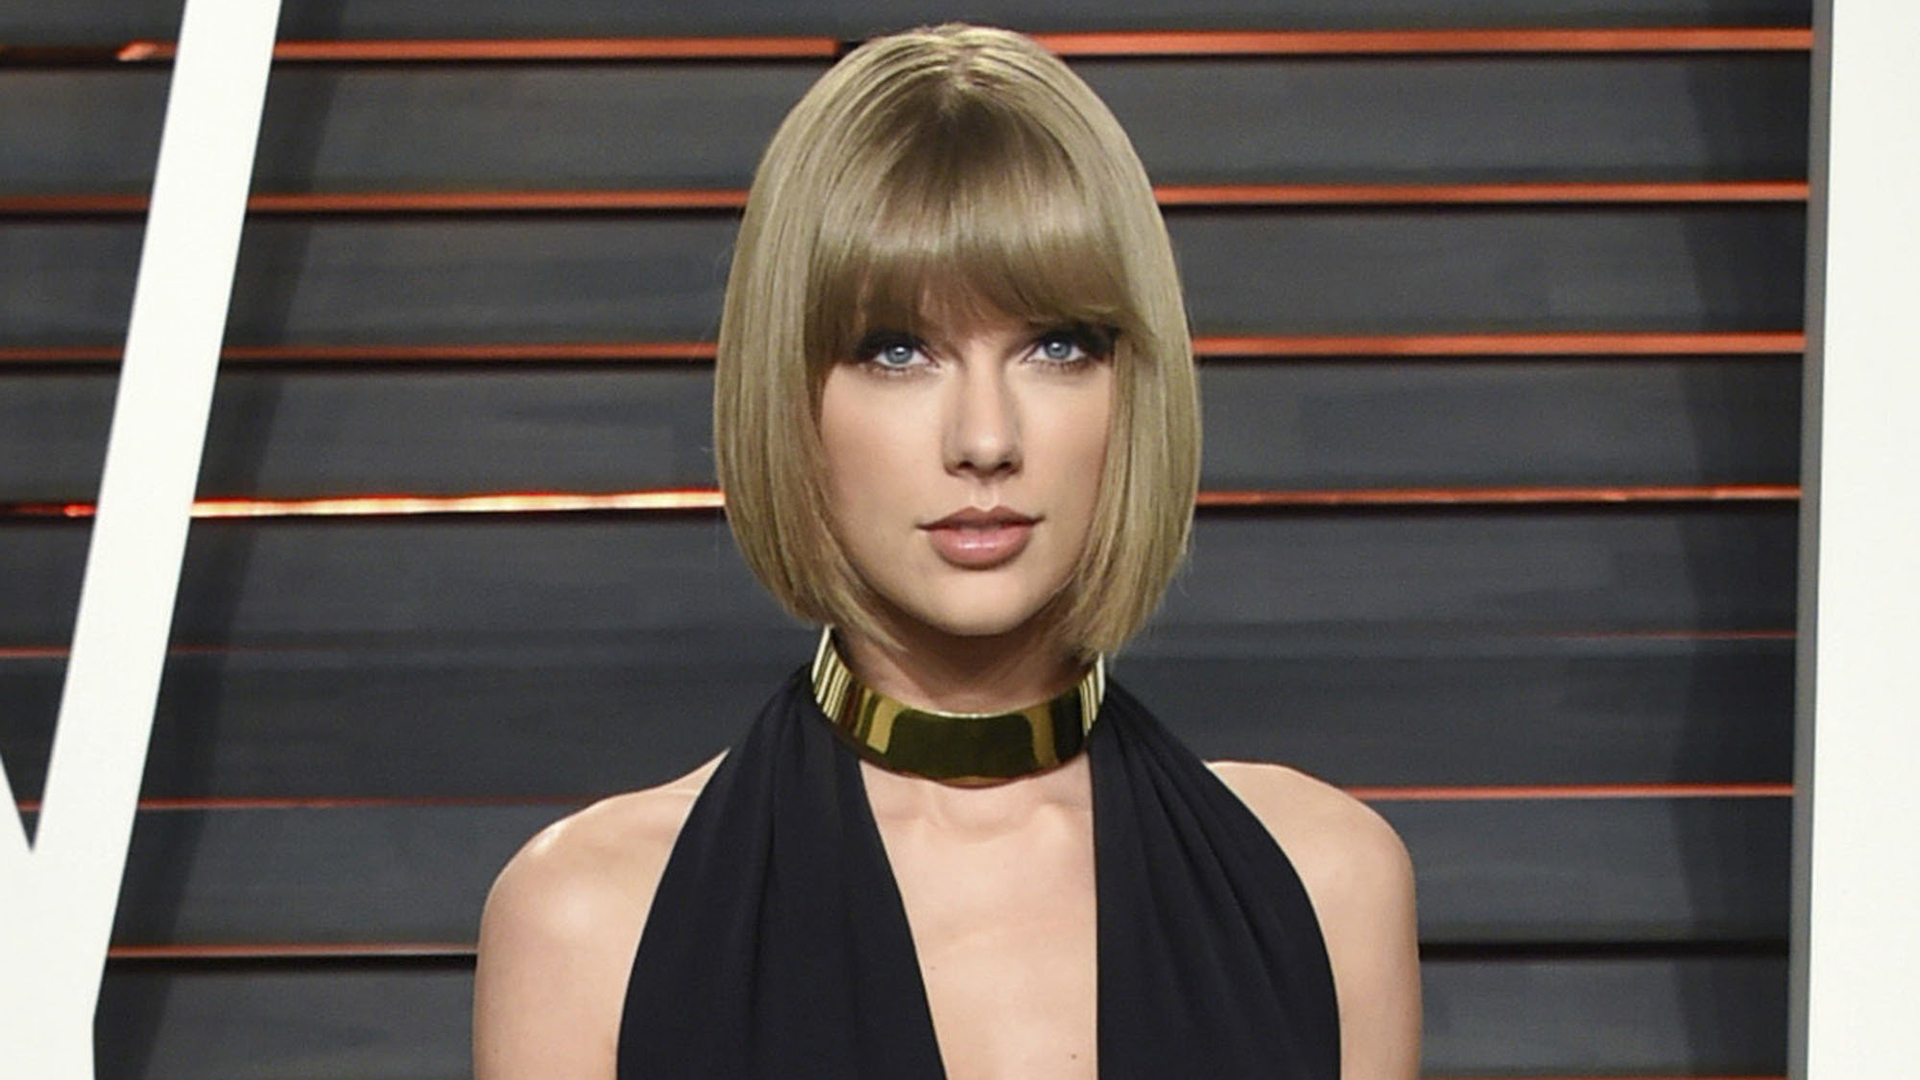 Taylor Swift announces new album 'Reputation' on Instagram ...